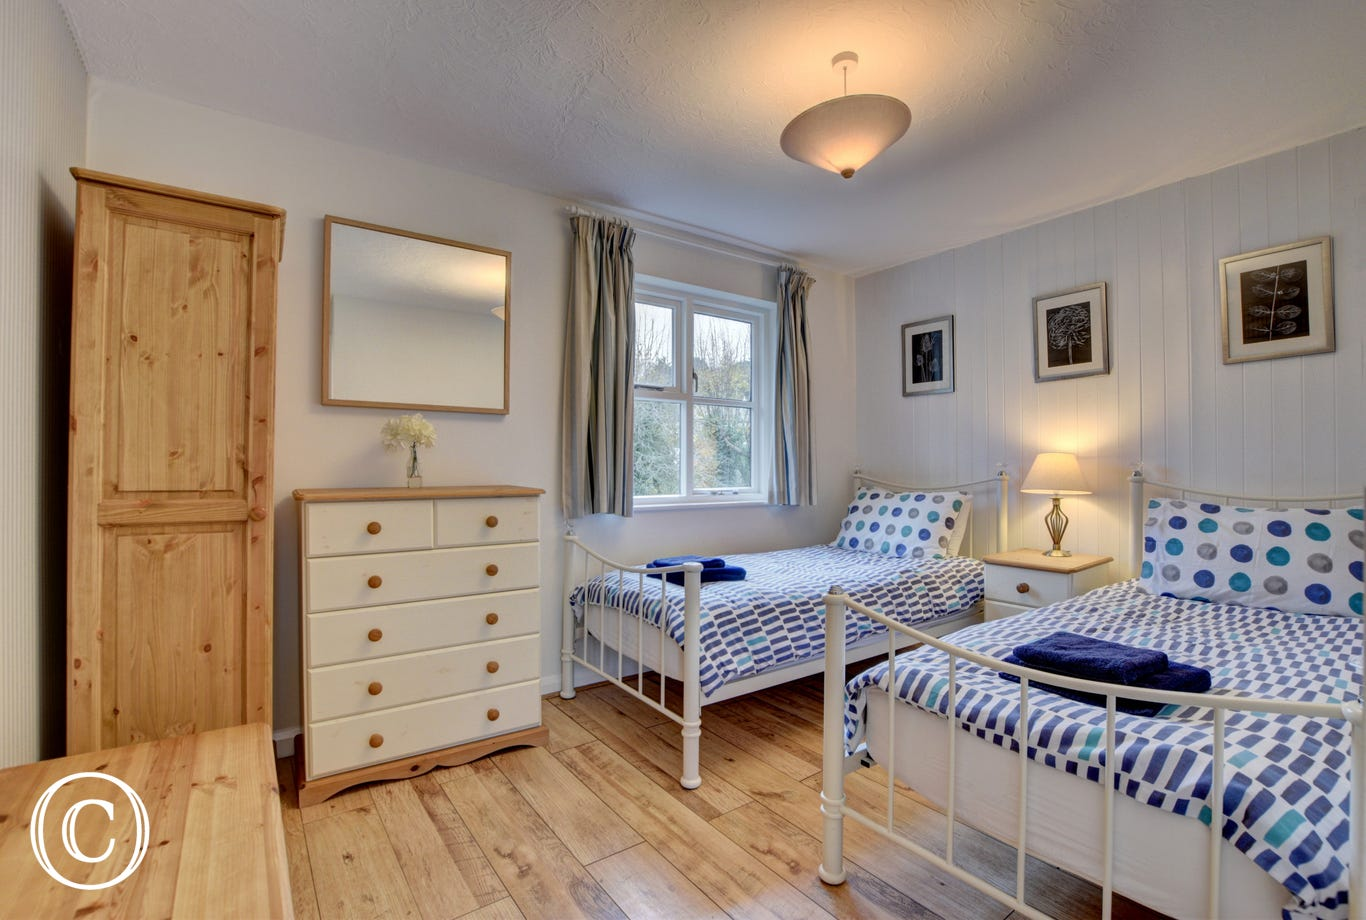 Twin bedroom with under floor heating and garden views